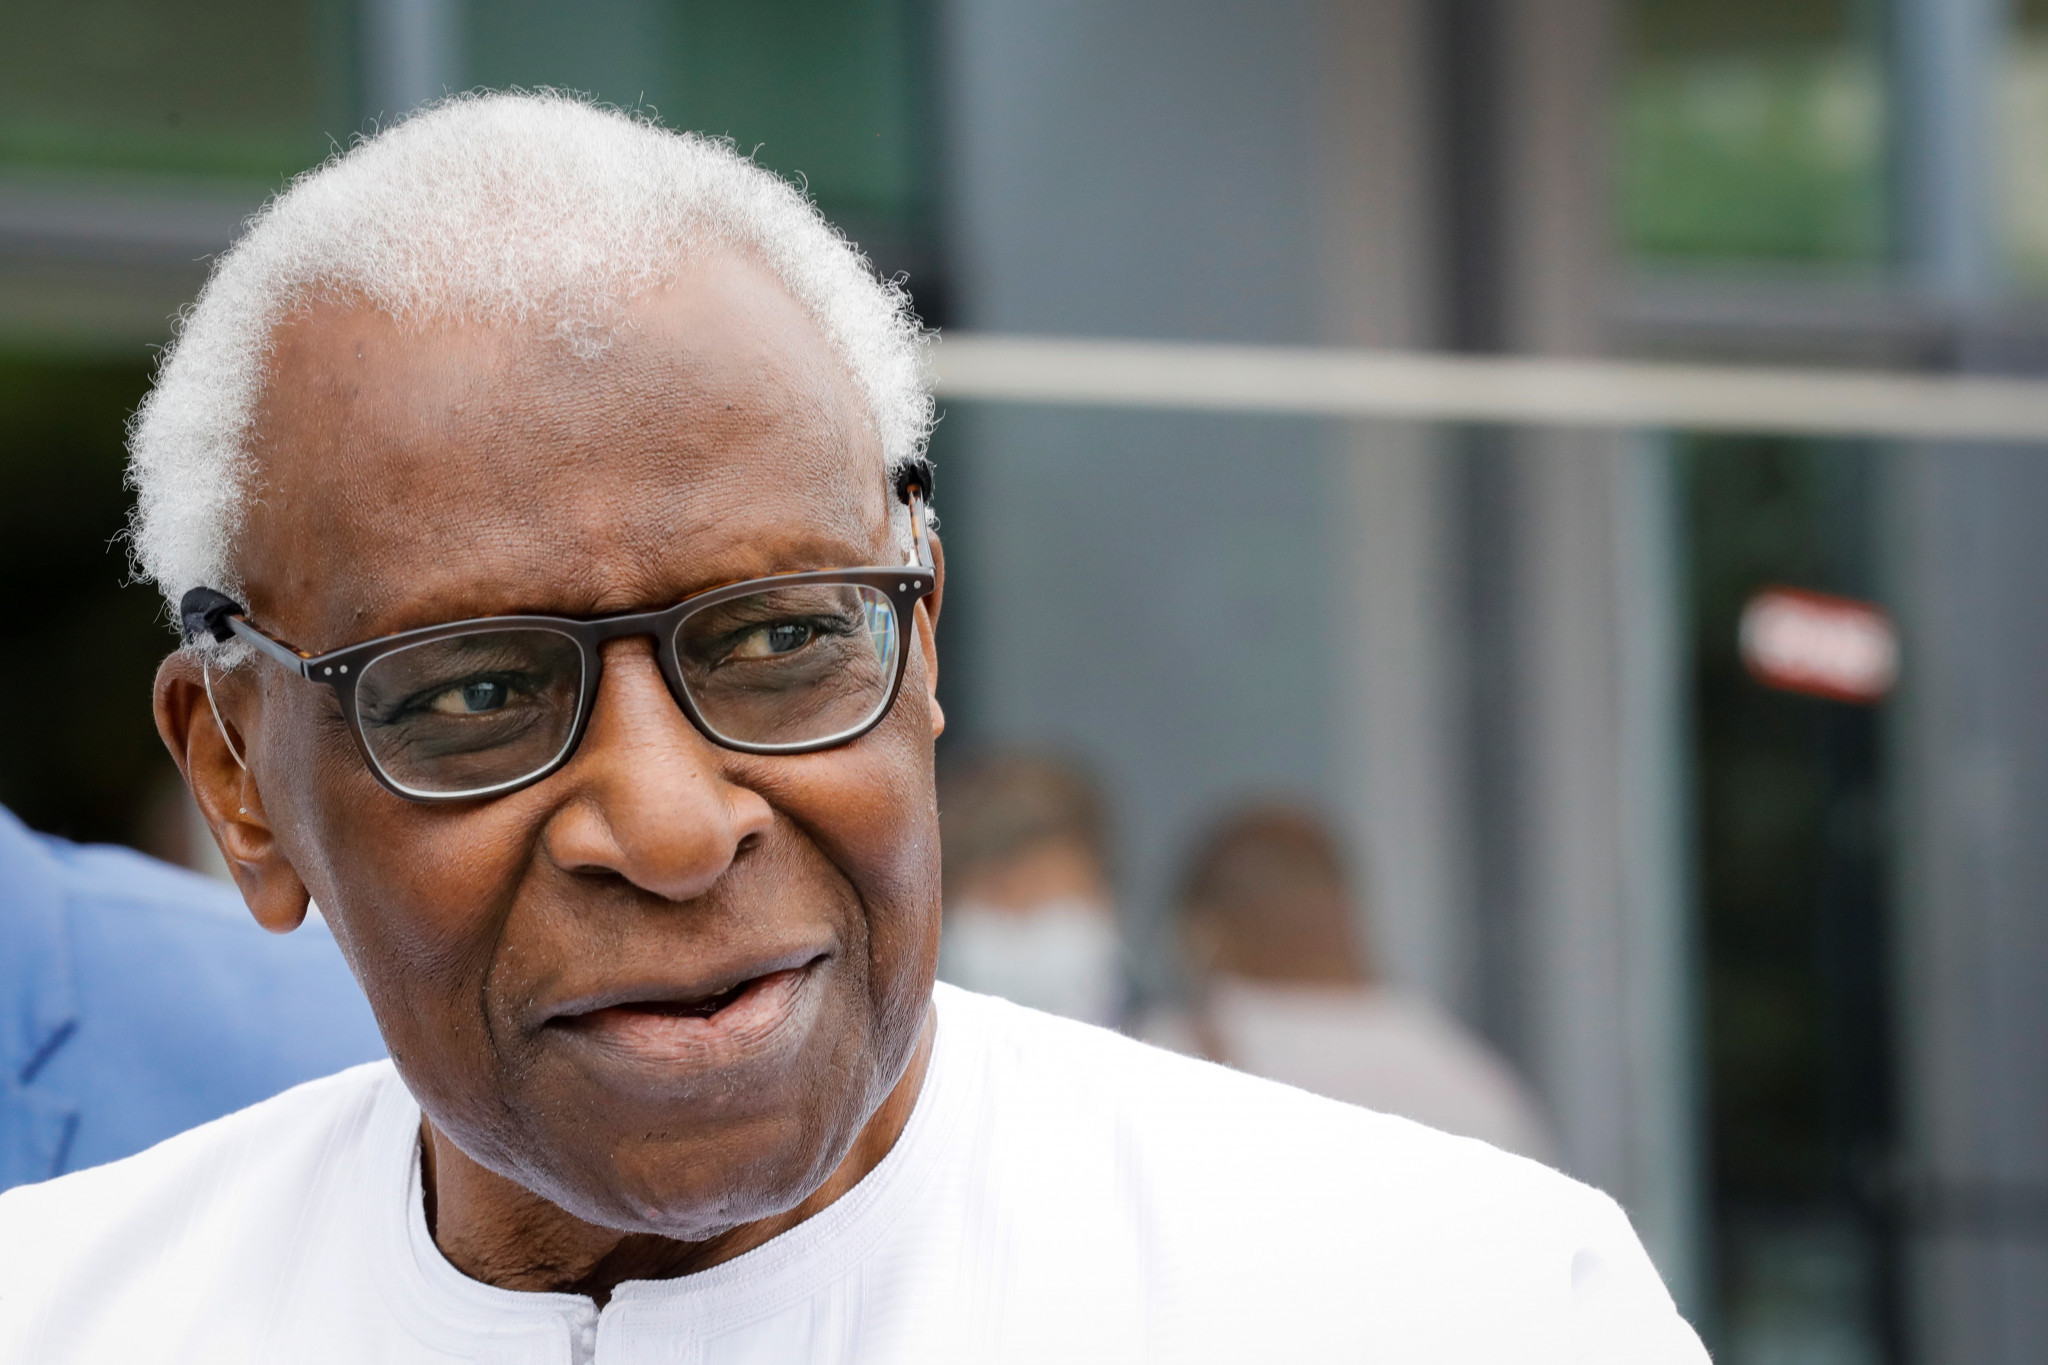 Lamine Diack gave disjointed answers during his appearance in court as part of his corruption trial ©Getty Images